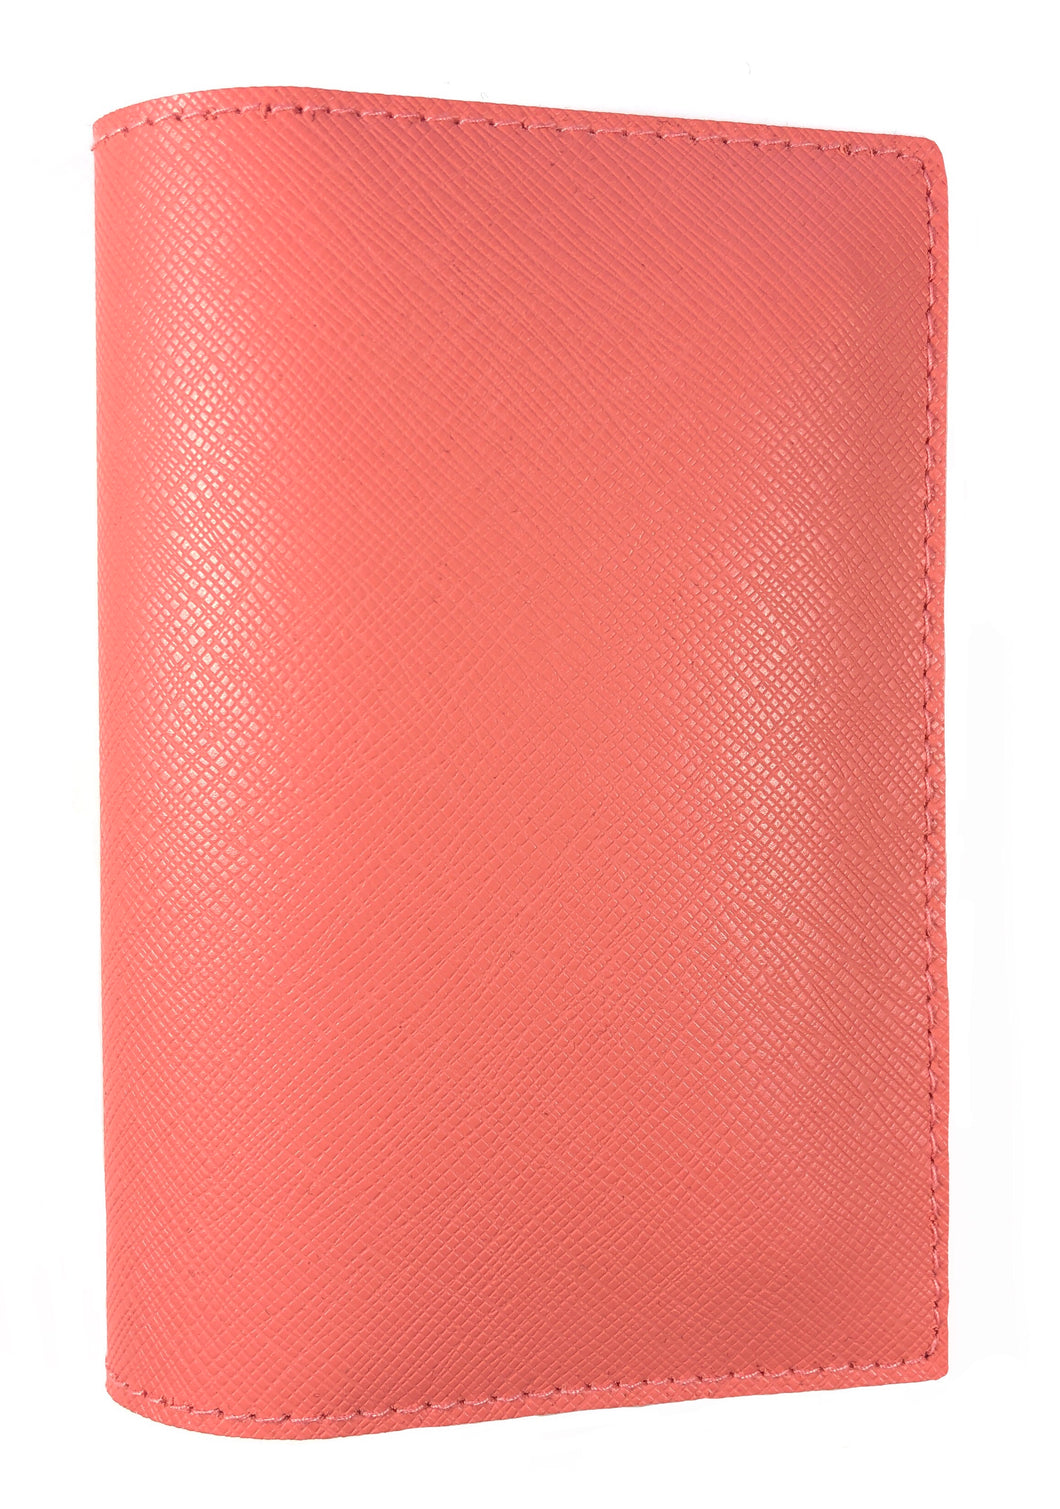 Saffiano Dusty Pink